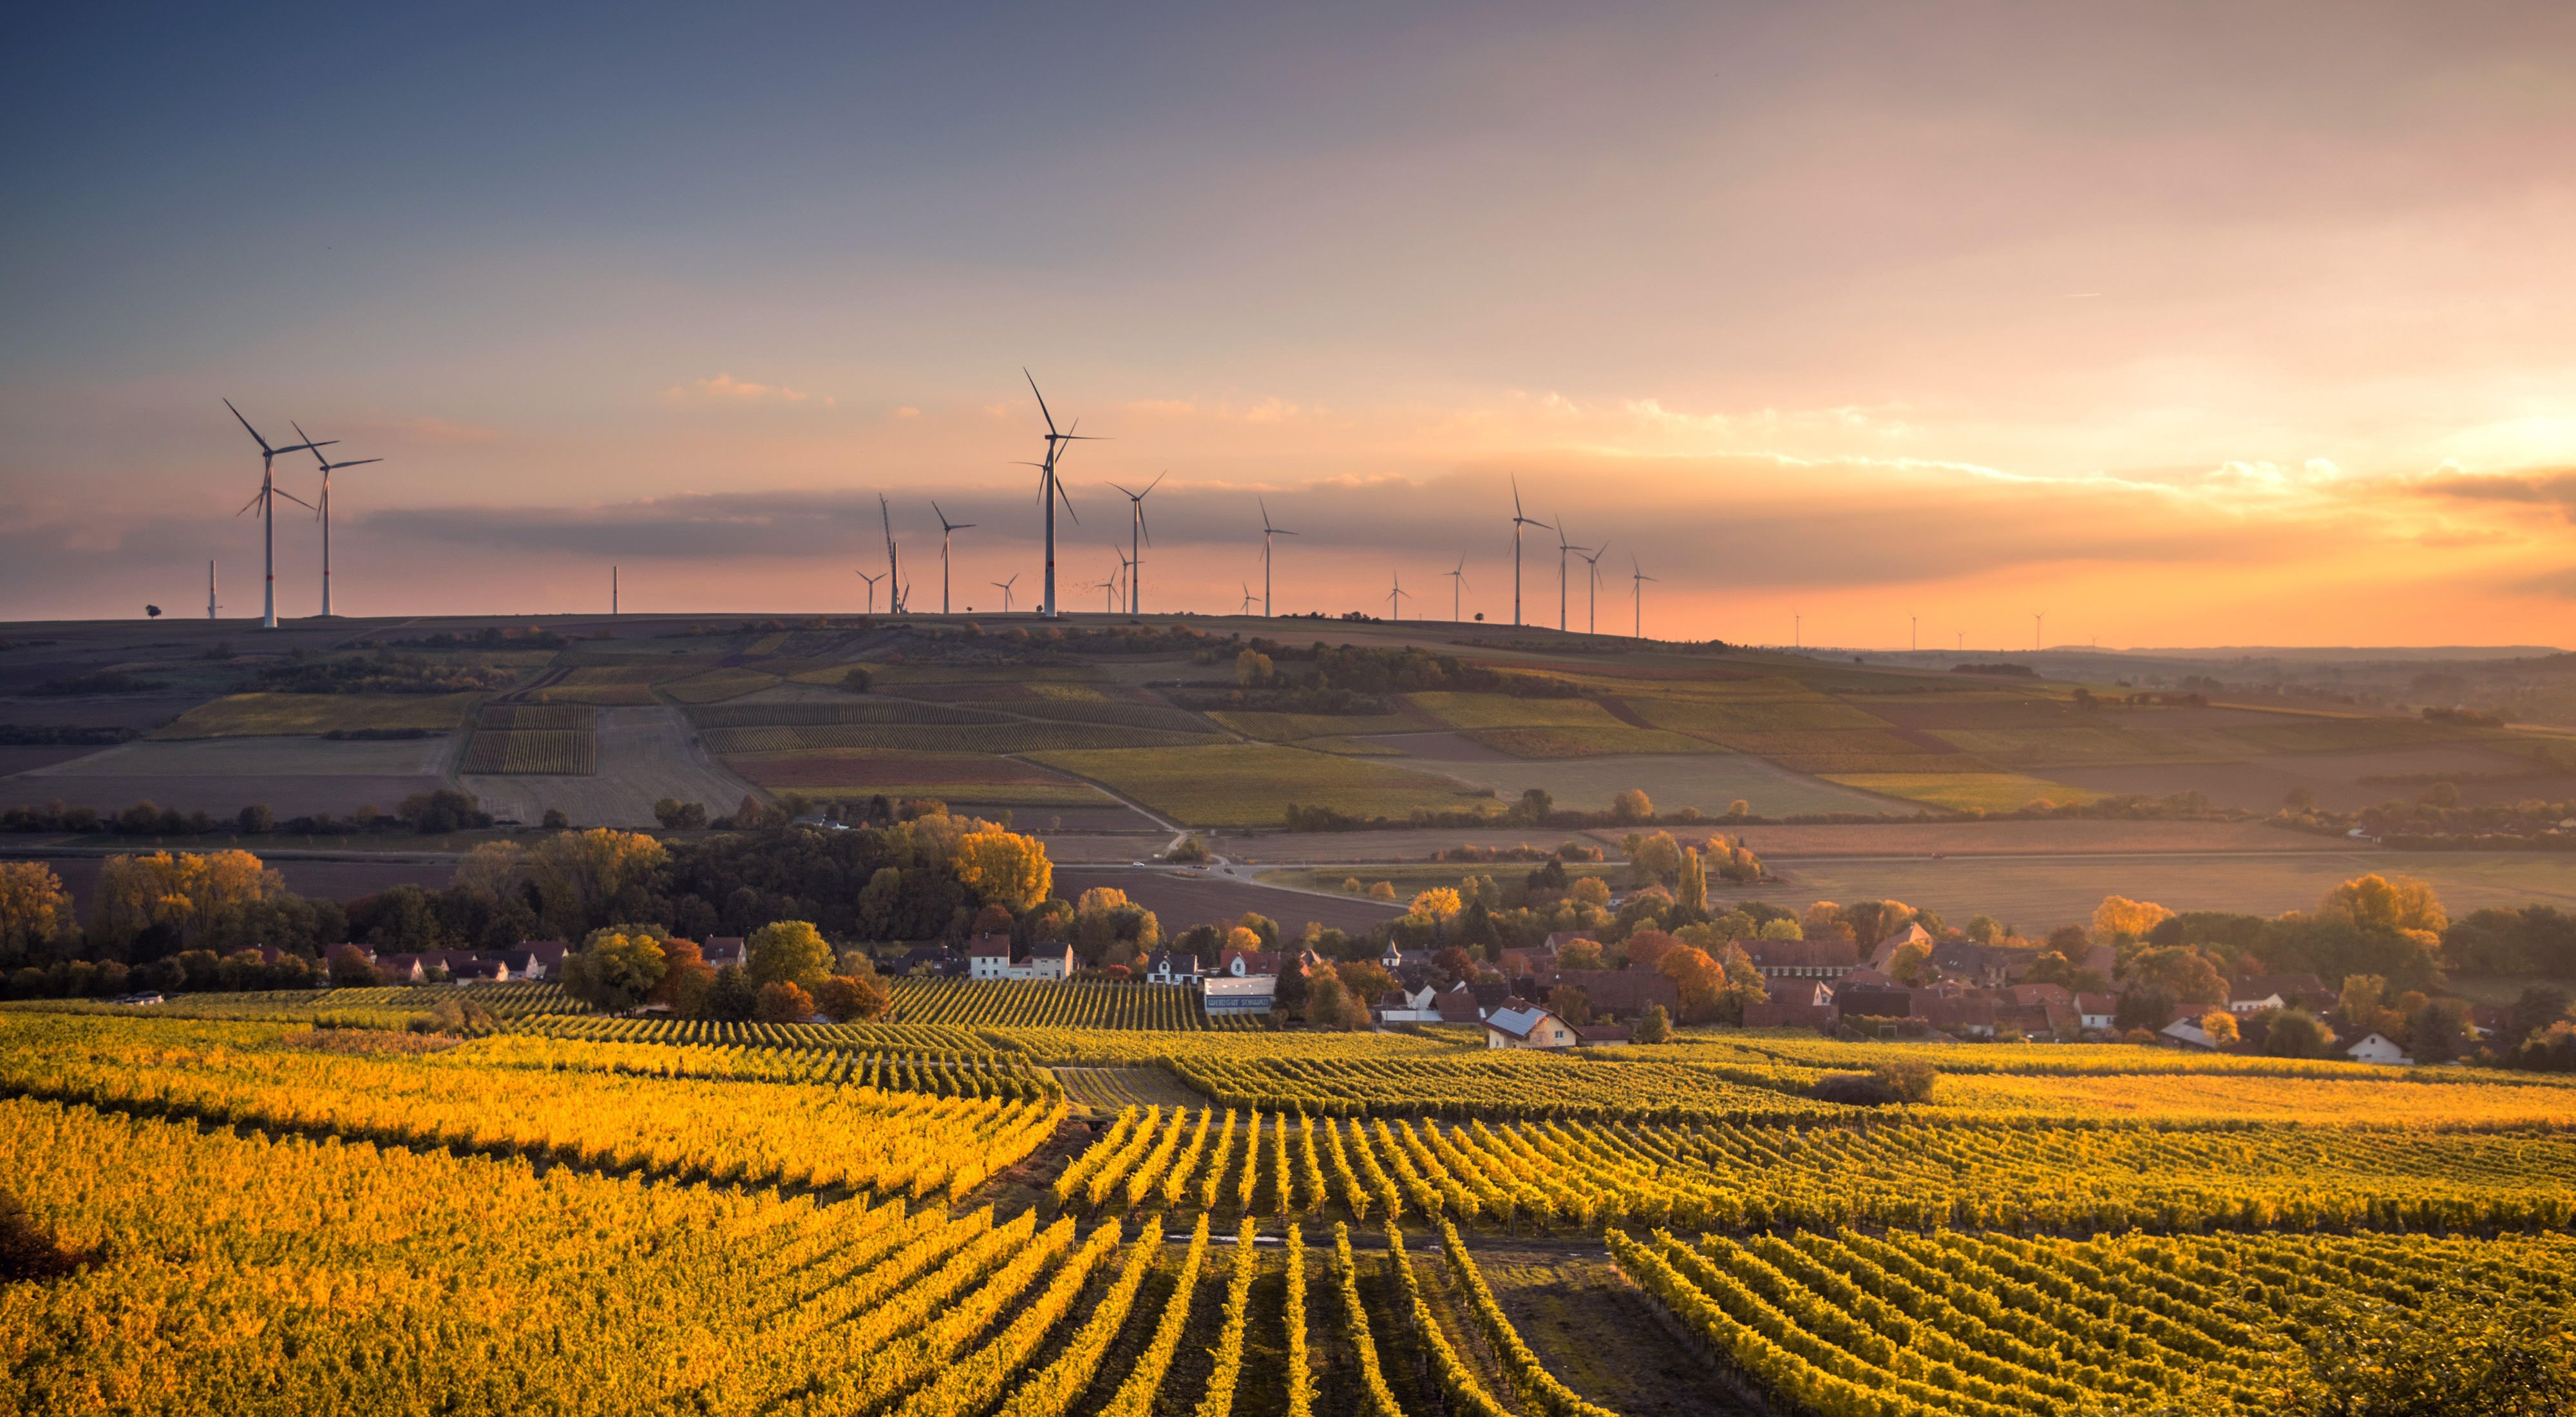 Agricultural fields and wind turbines in the sunset.